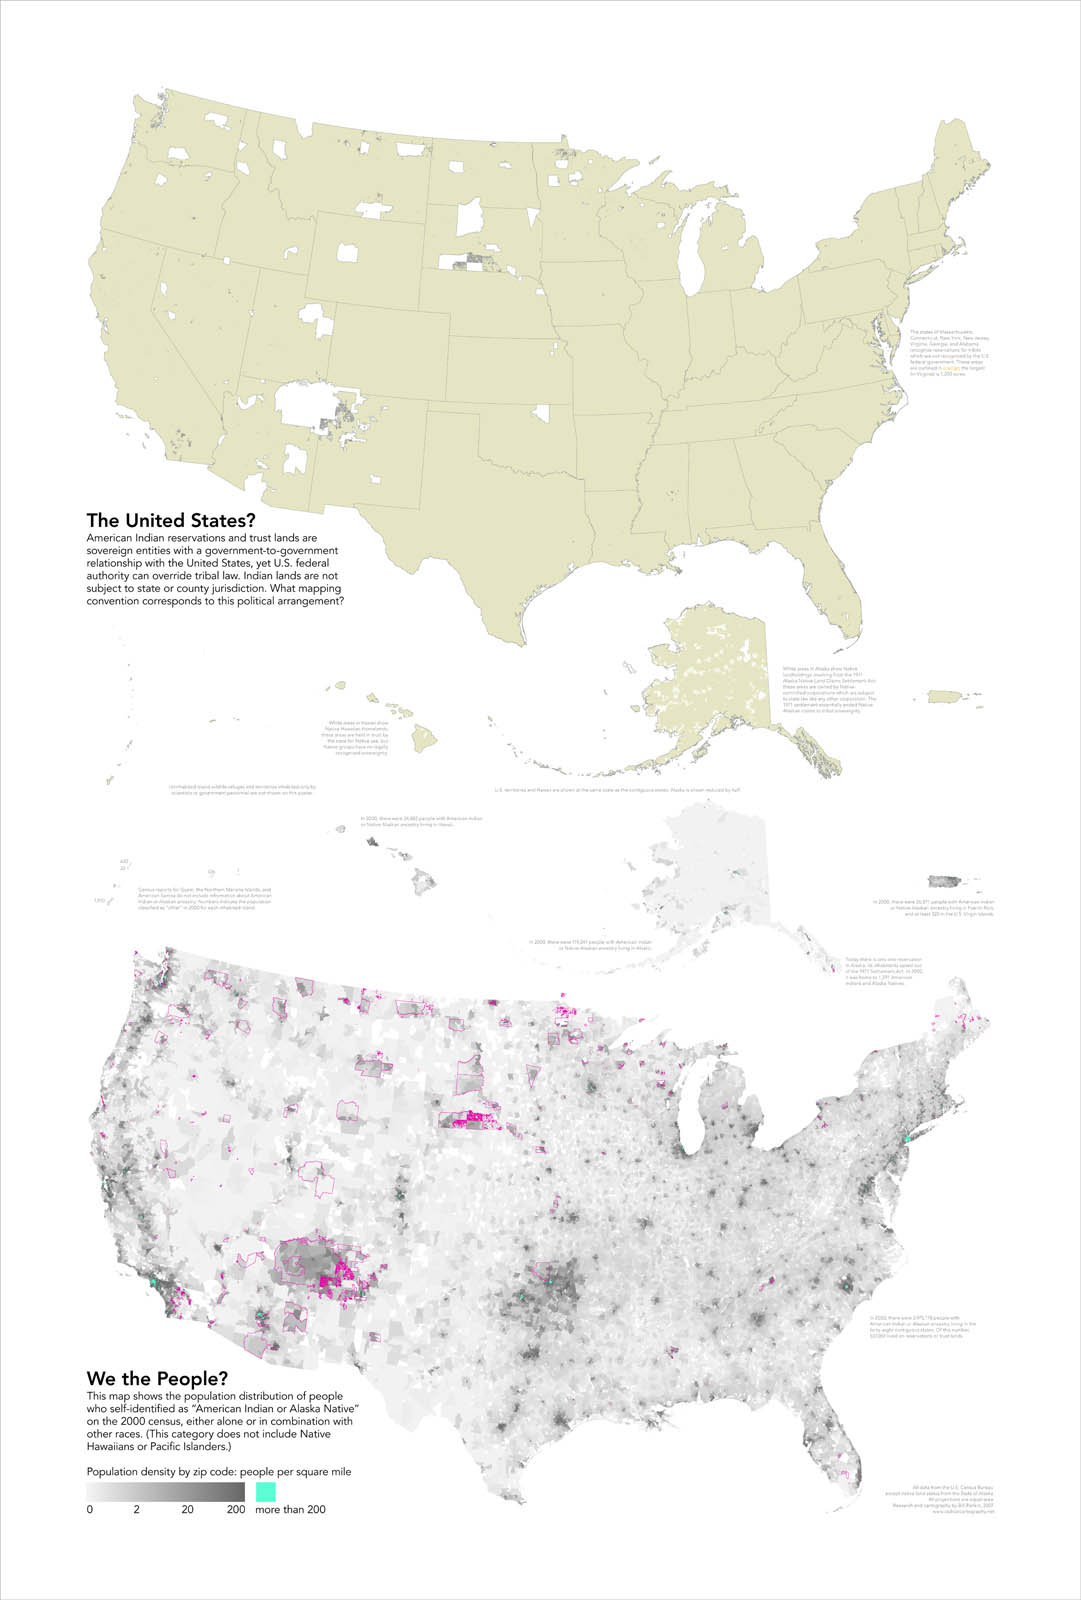 The White Areas Show Native American Reservations And Land Trusts The Second Map Shows The